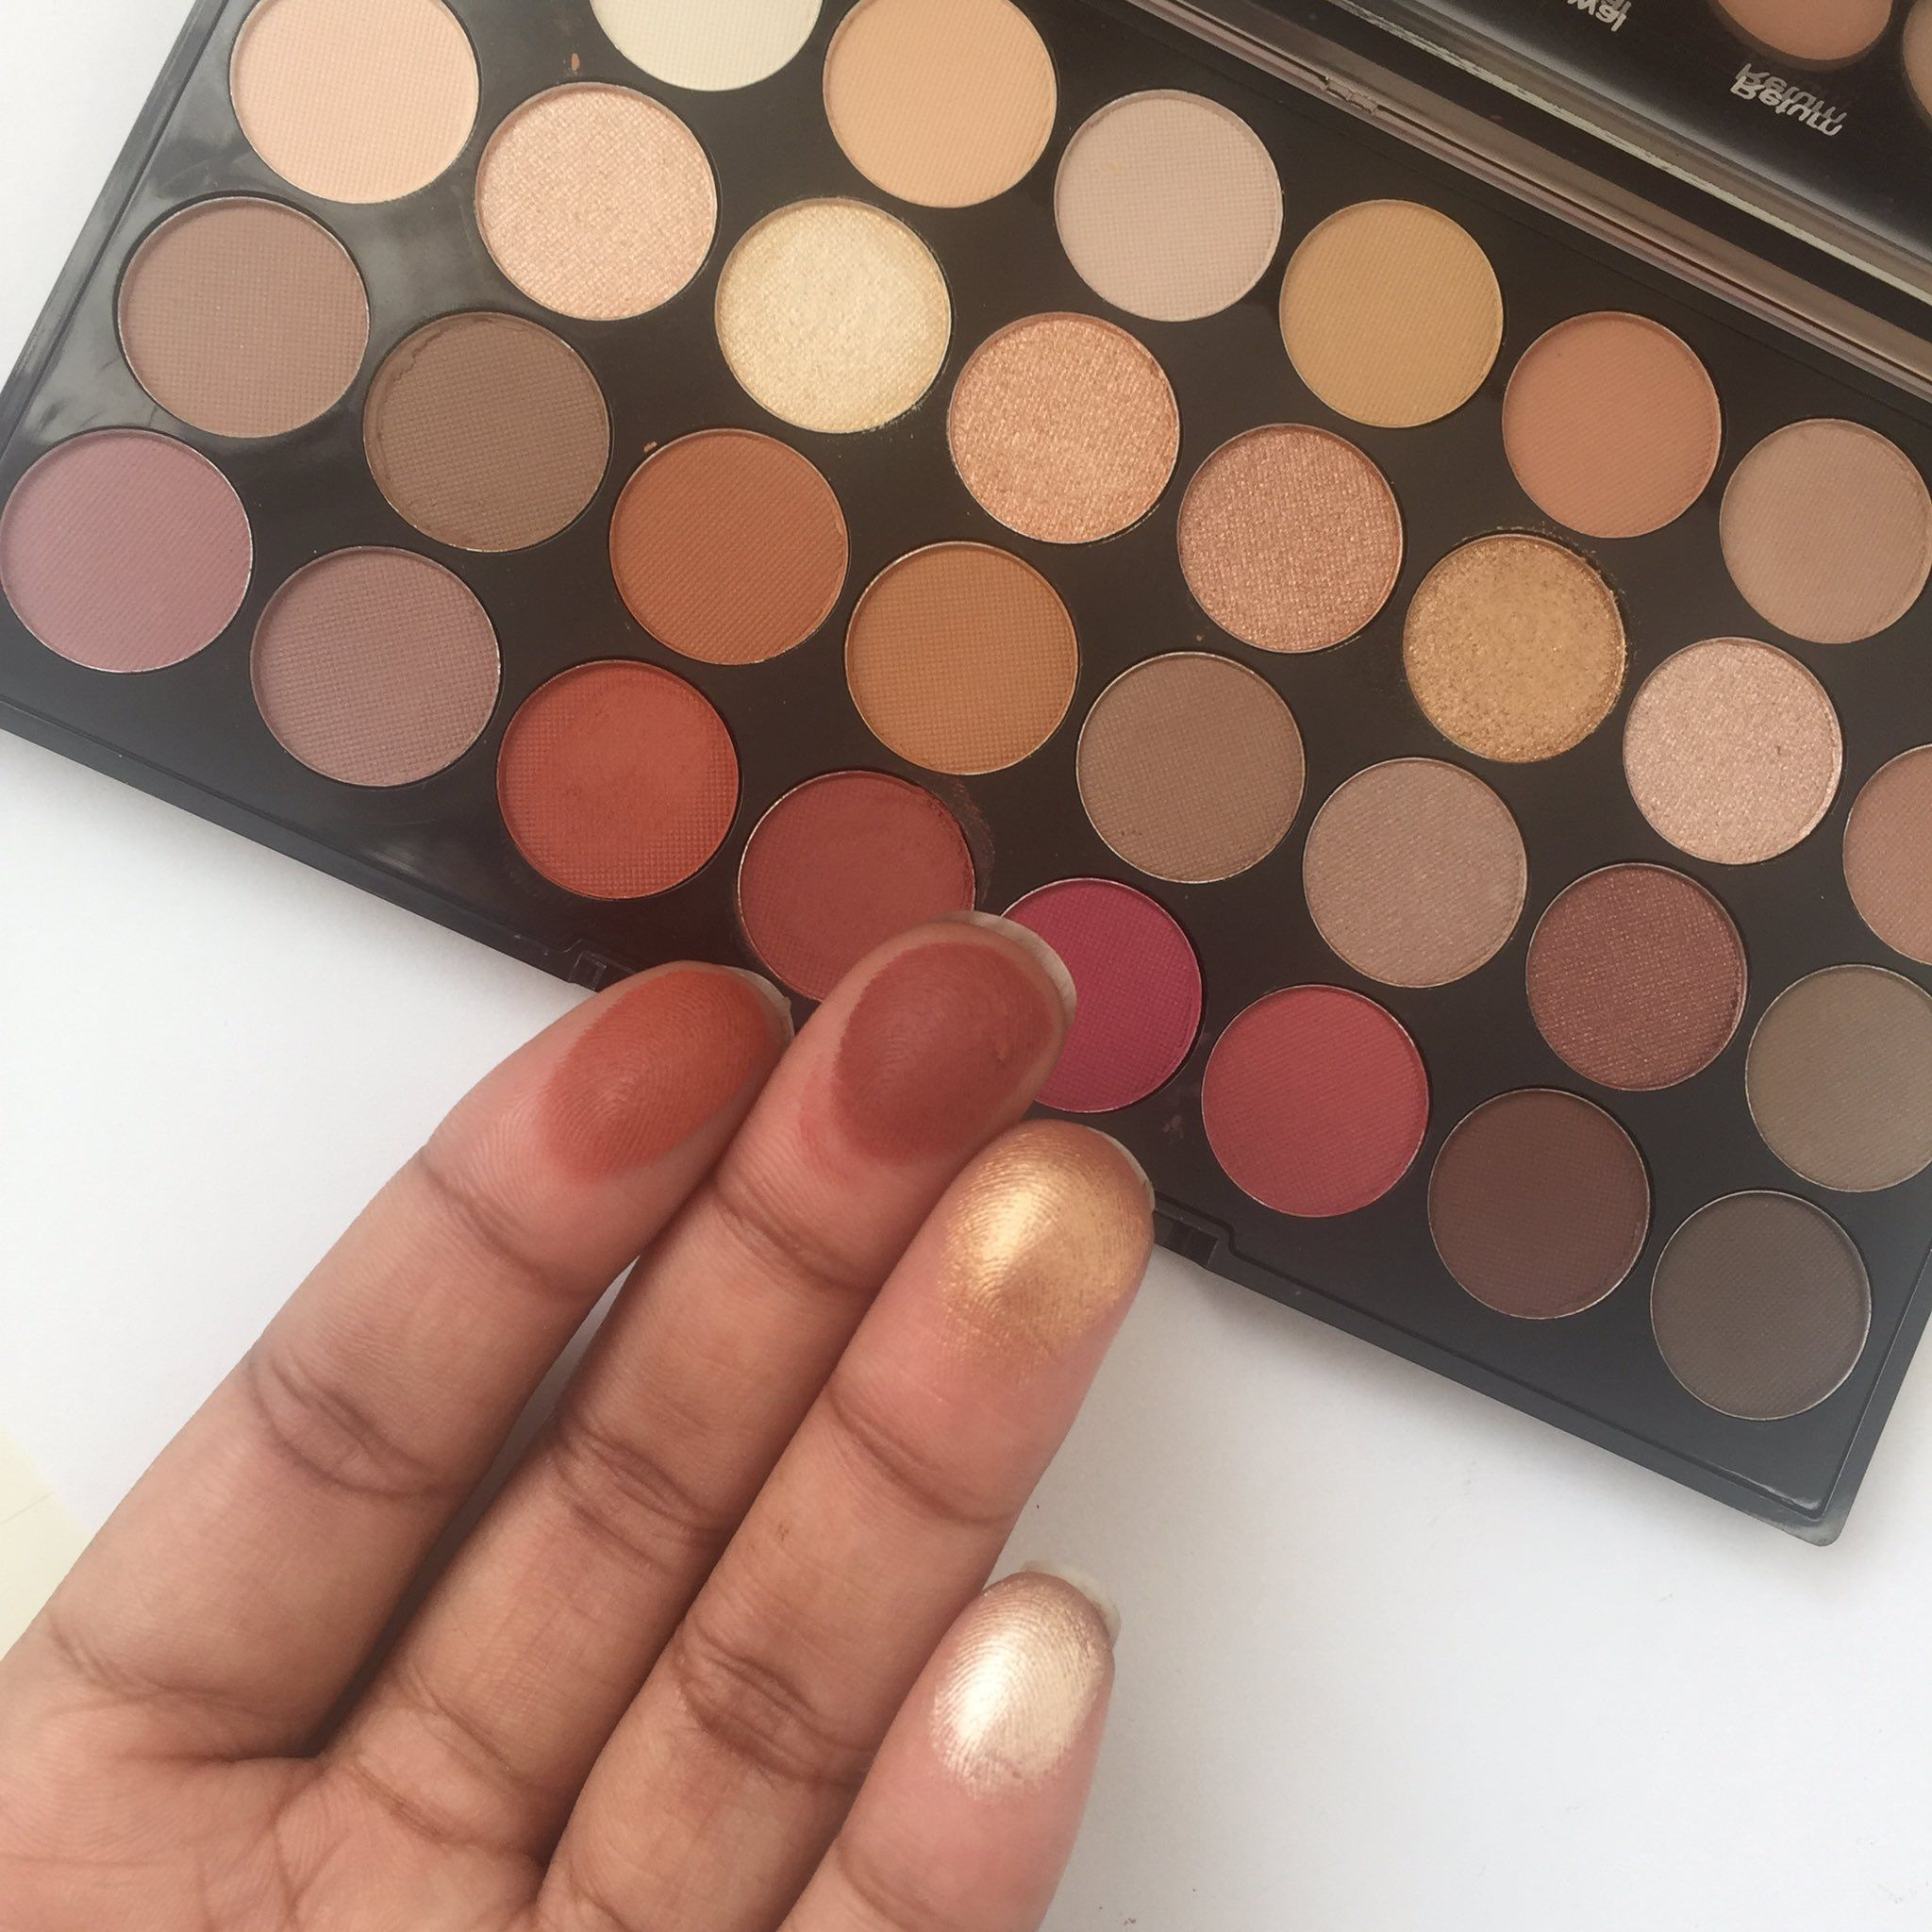 Makeup Revolution FLAWLESS 3 Palette (image from